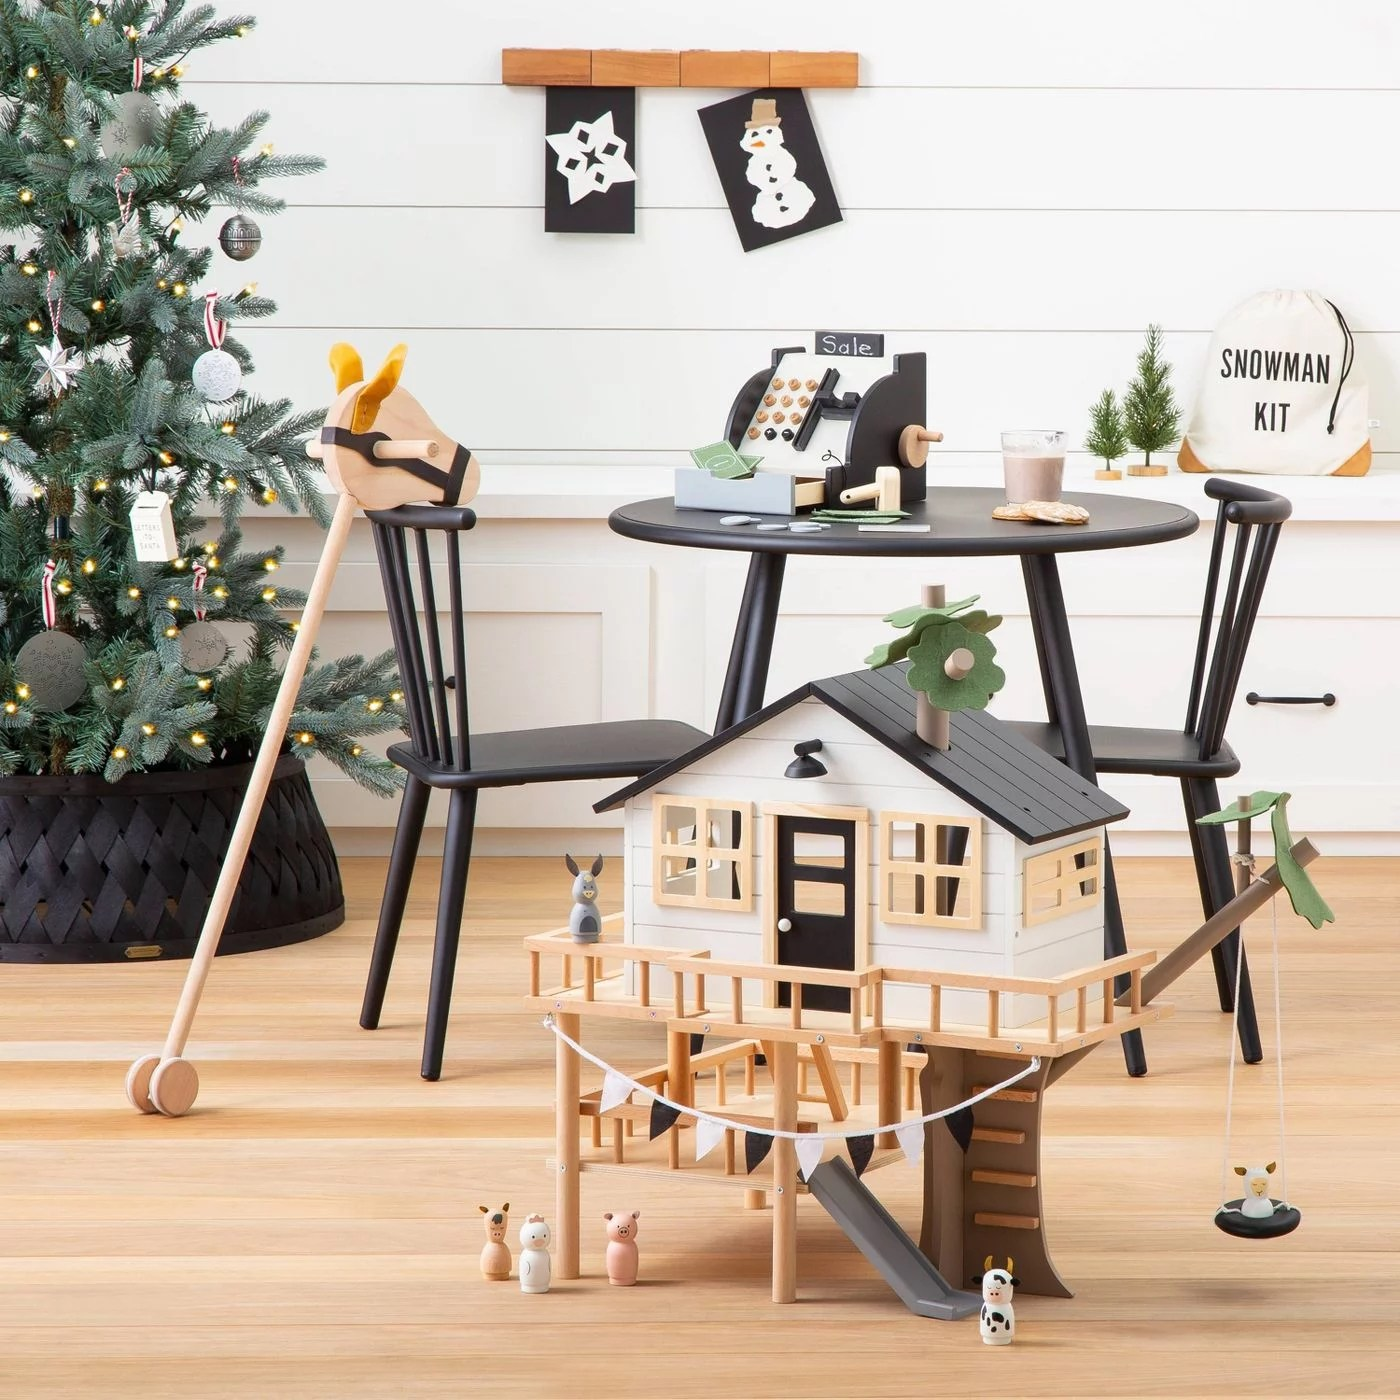 Magnolia Wooden Toys From Target Popsugar Family